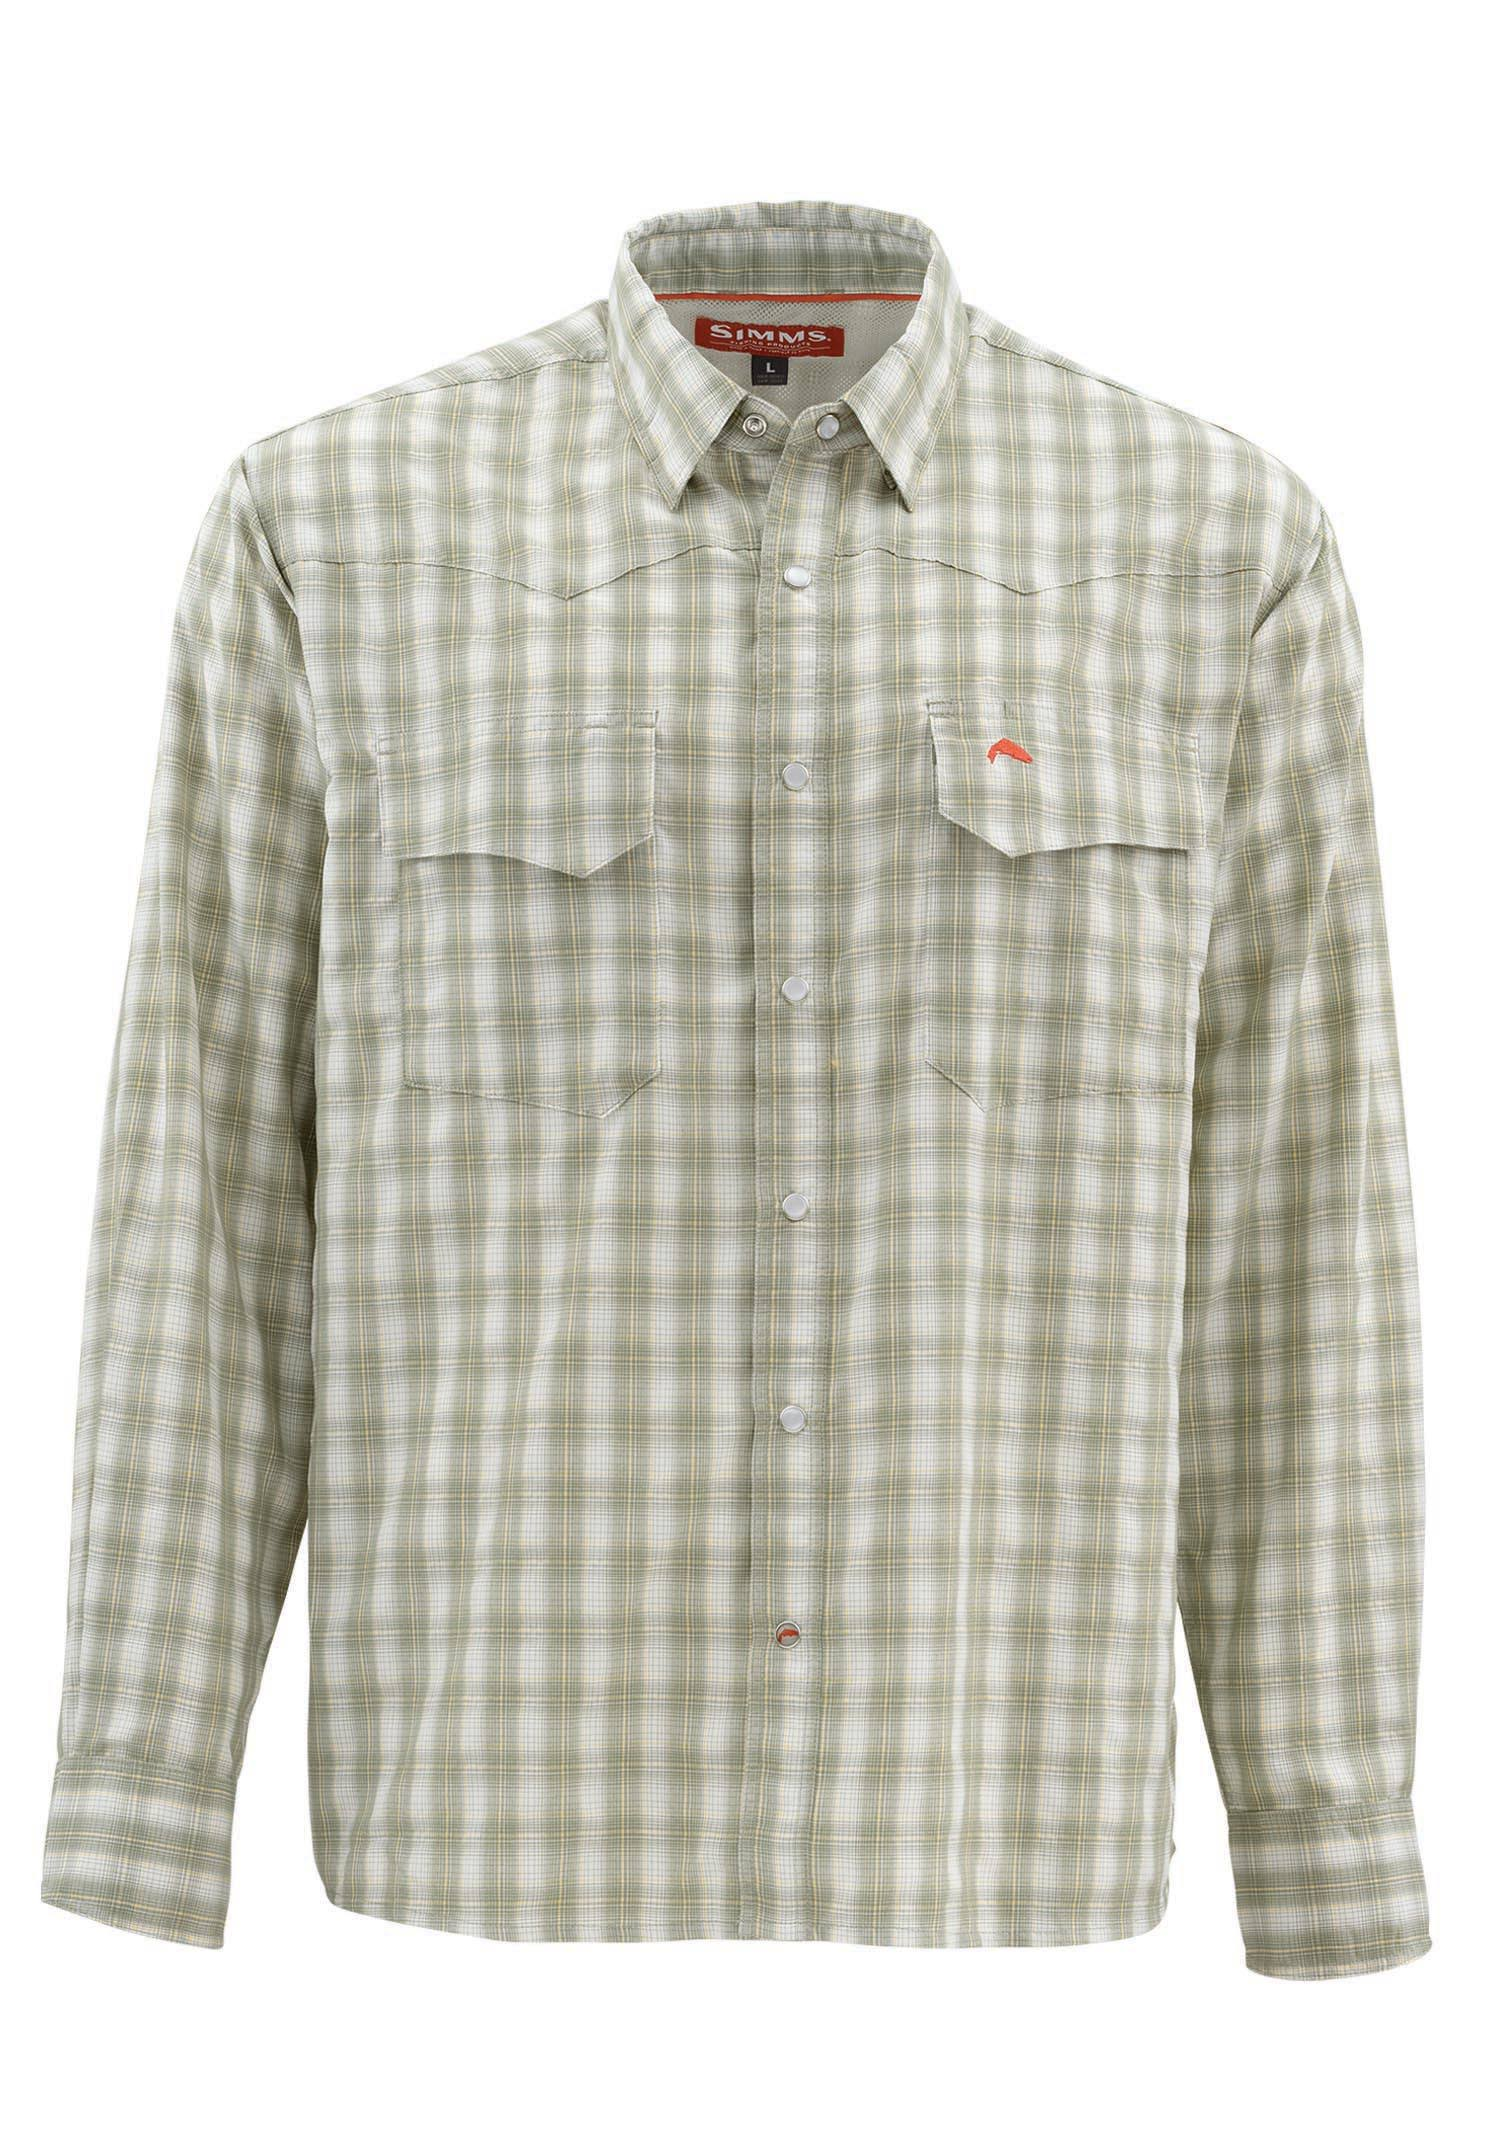 Simms Big Sky Shirt: L; Dark Khaki Plaid; Long Sleeve